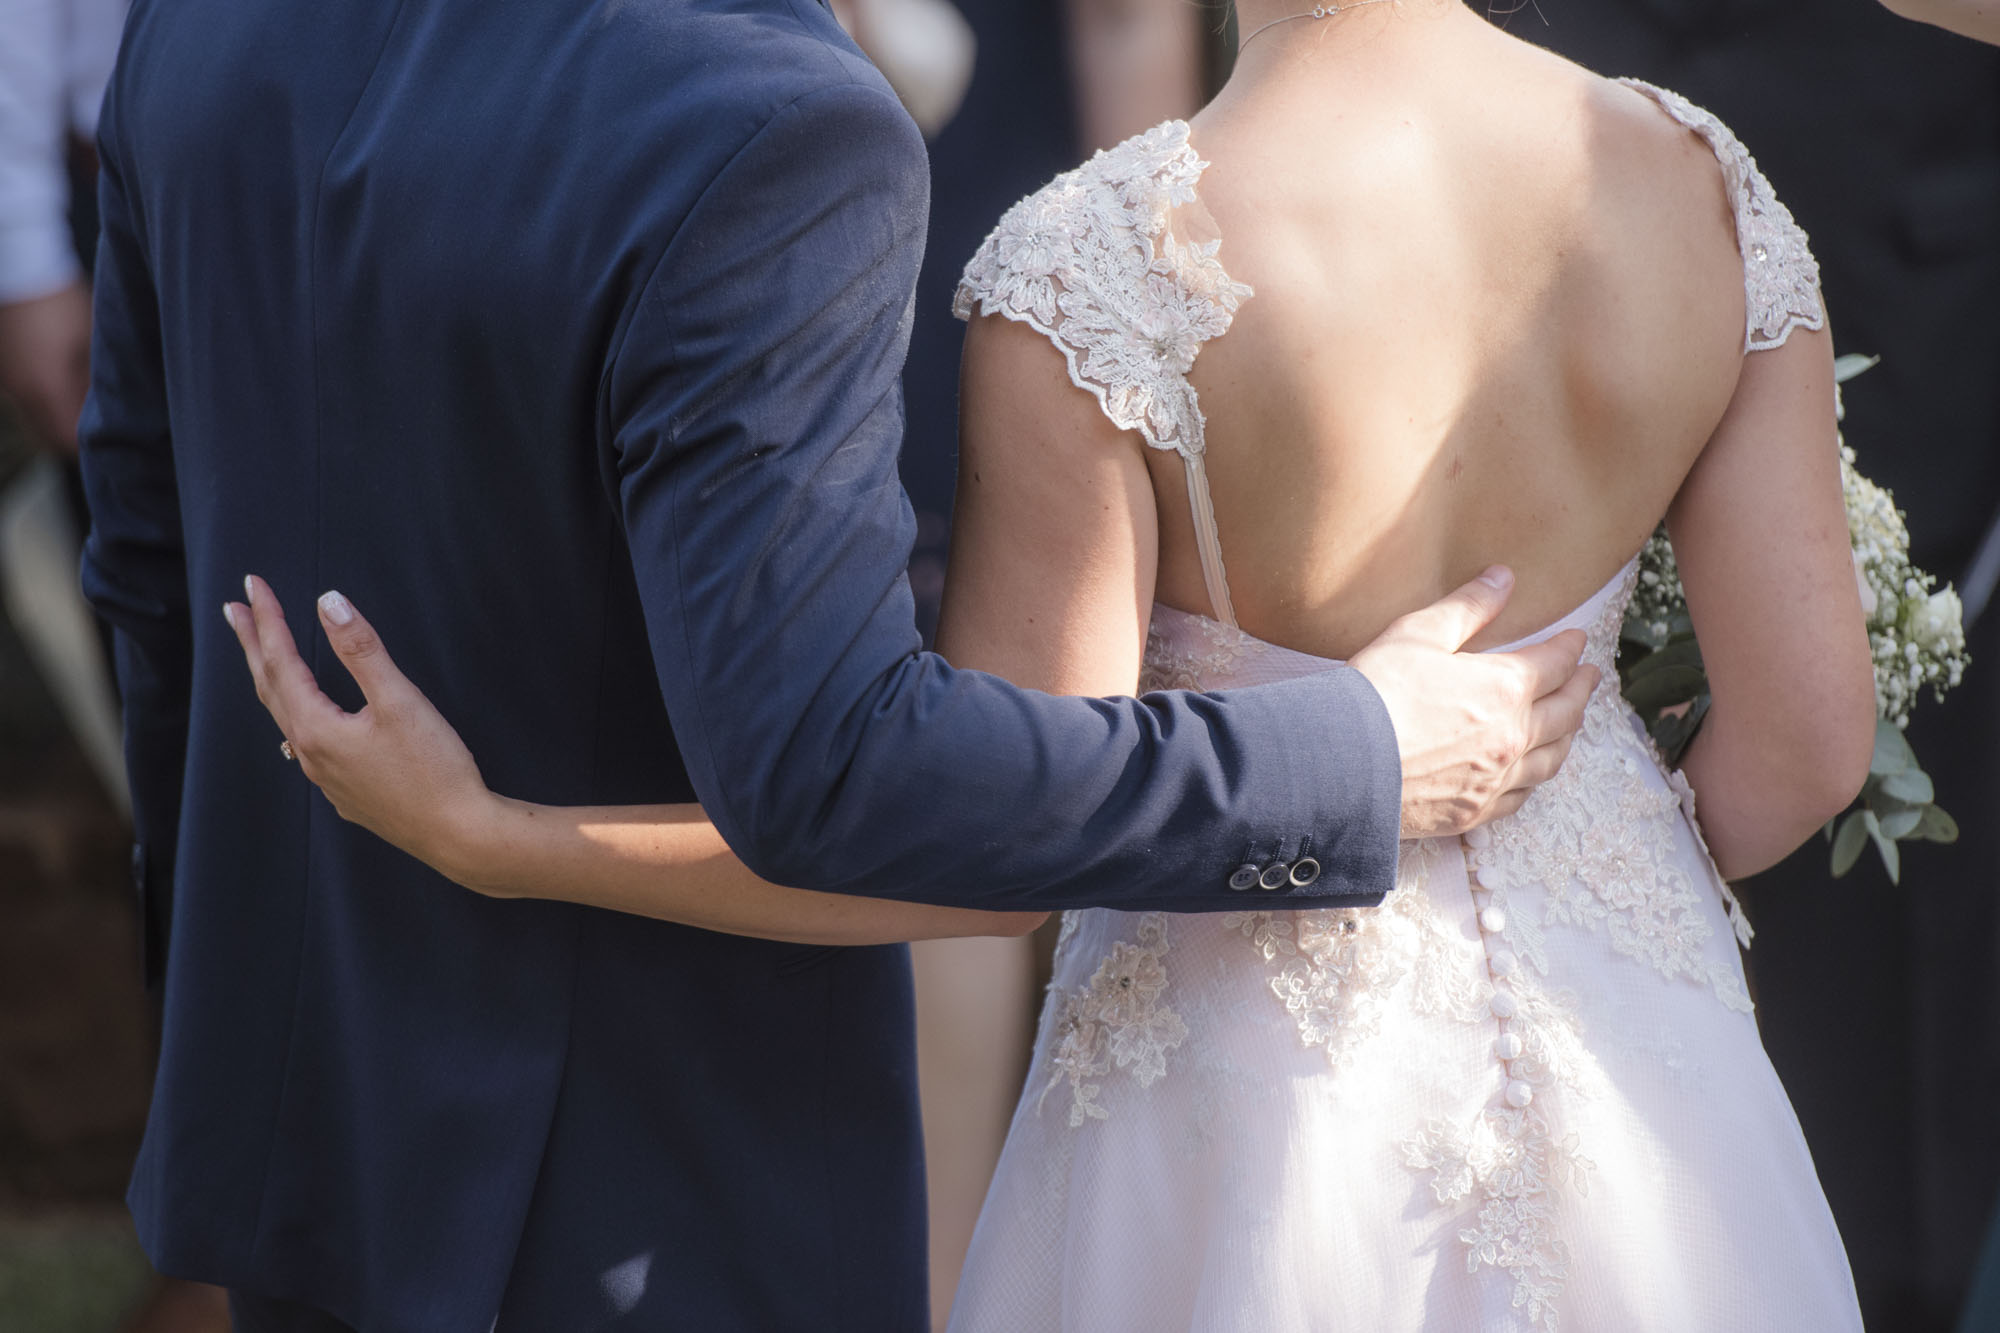 105-wedding-photography-packages-johannesburg105-wedding-photography-packages-johannesburg_a.jpg